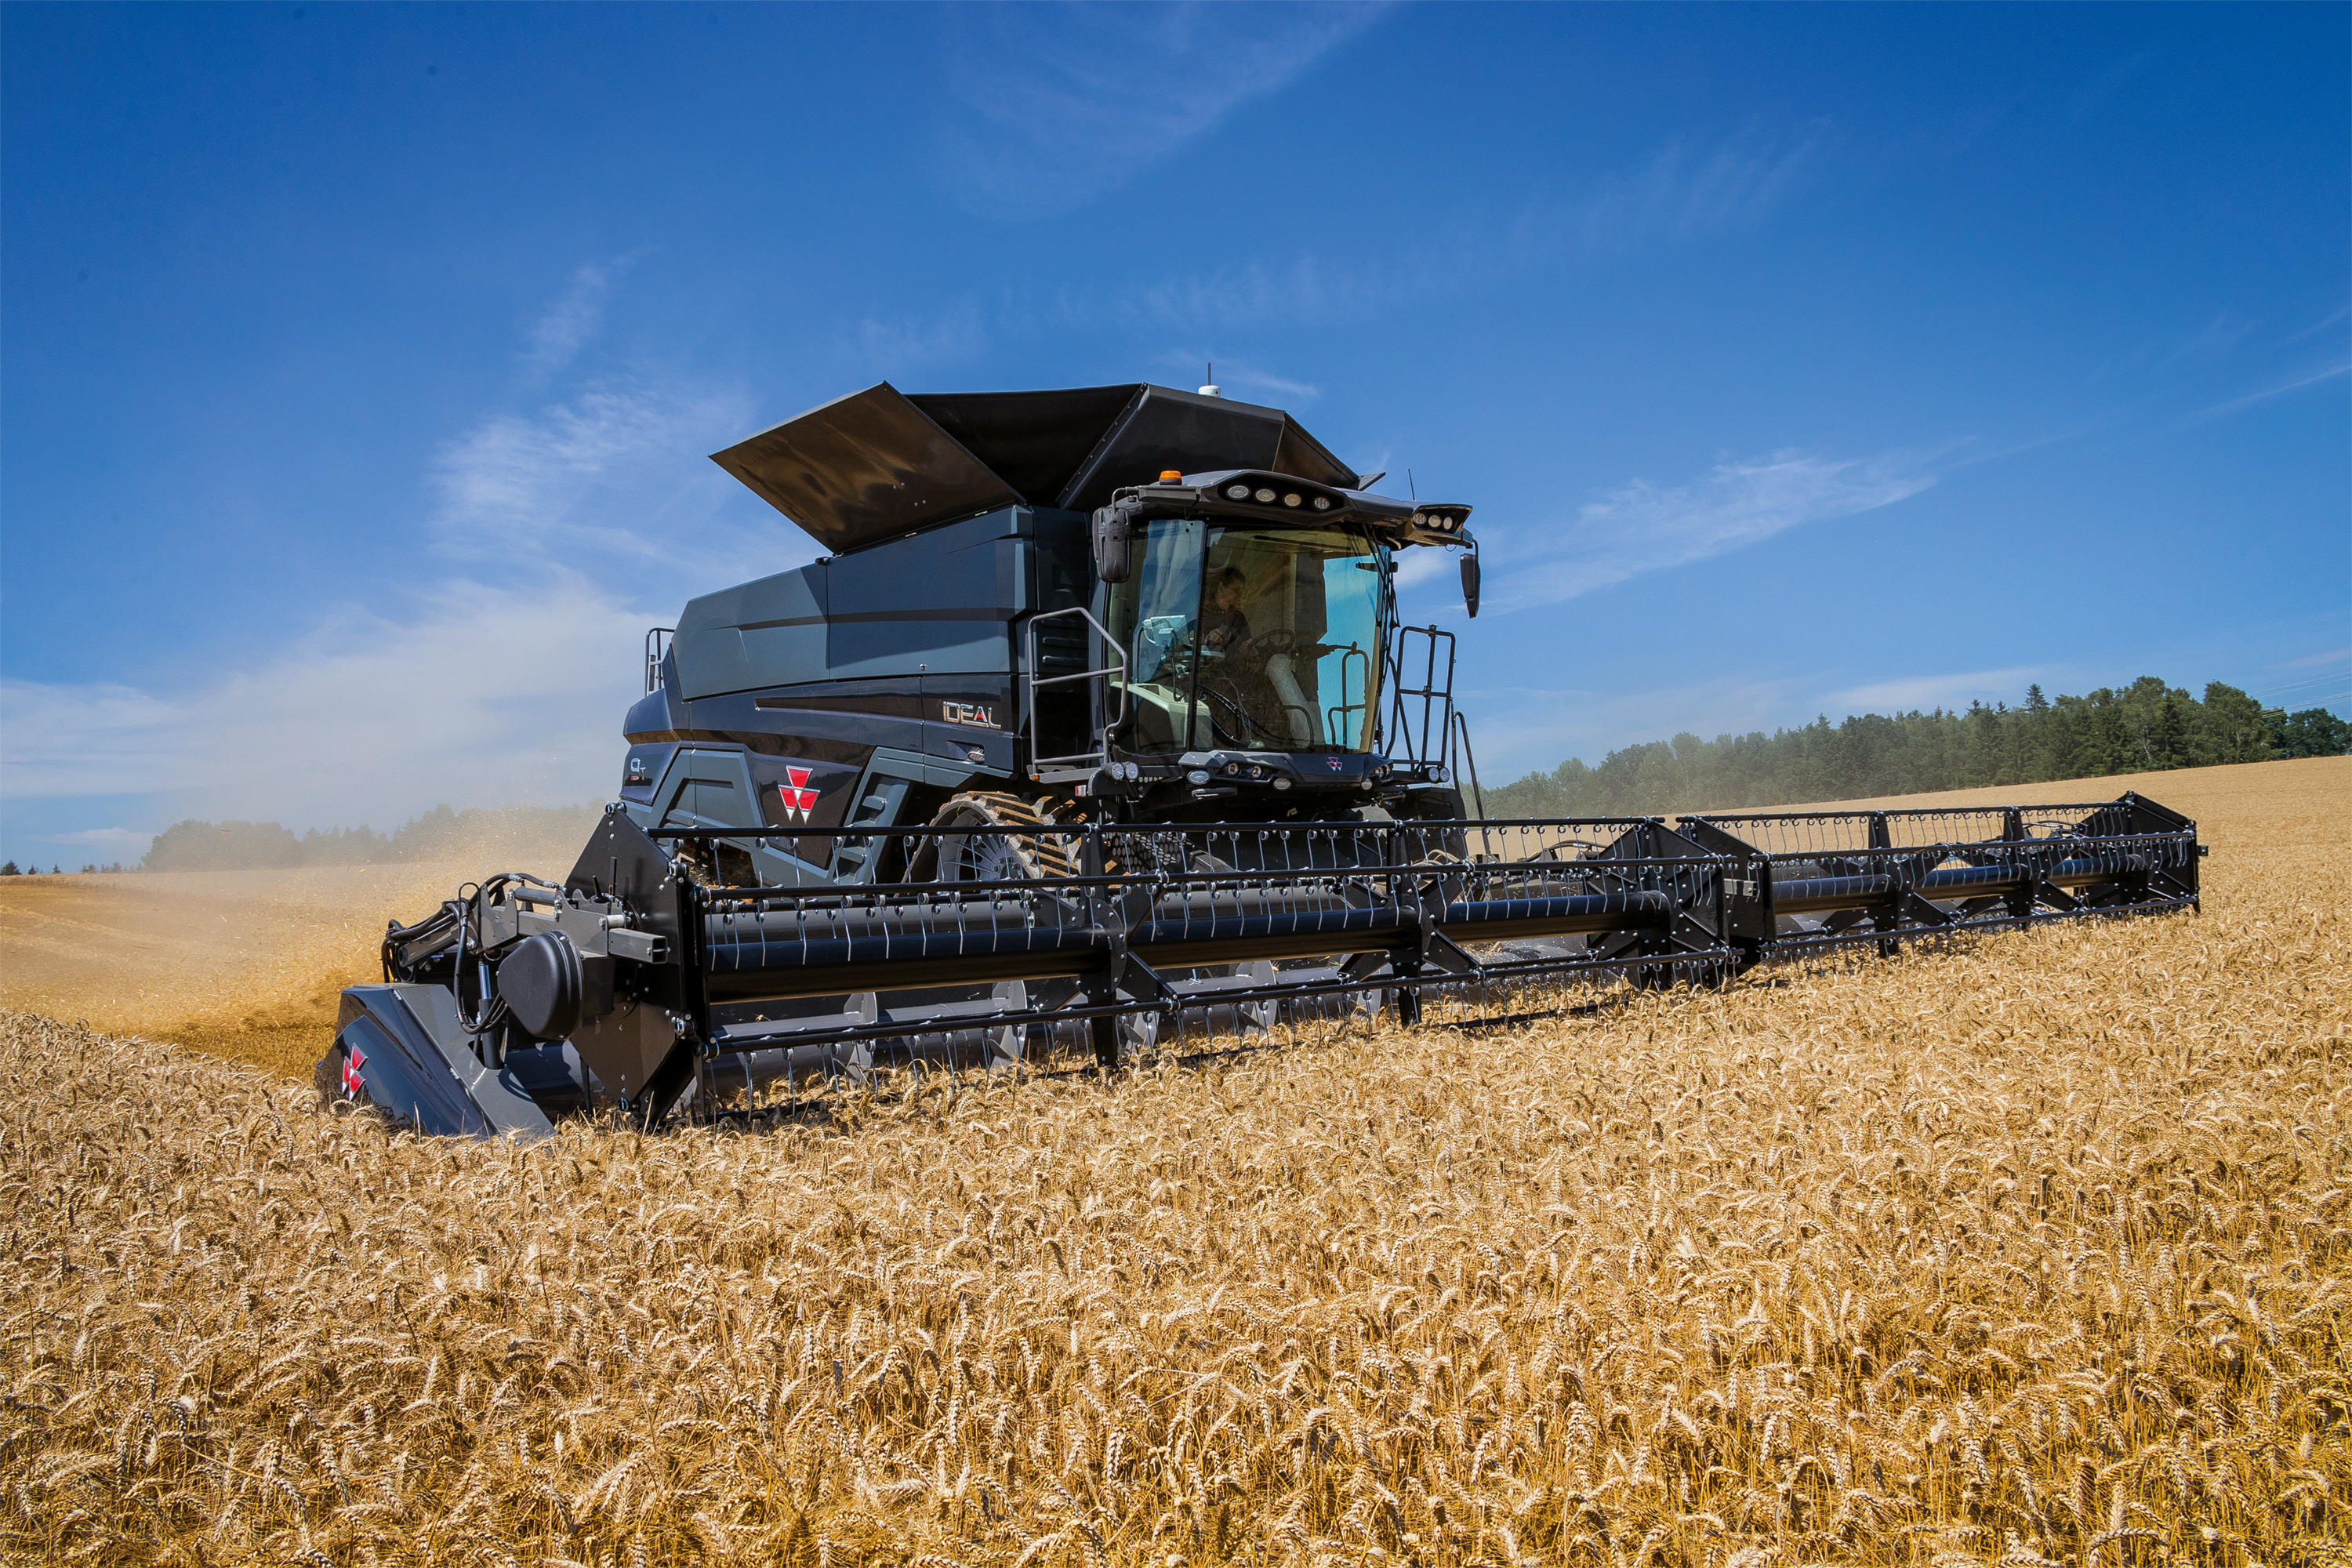 Massey Ferguson Combines : New ideal from massey ferguson combine harvesters deliver